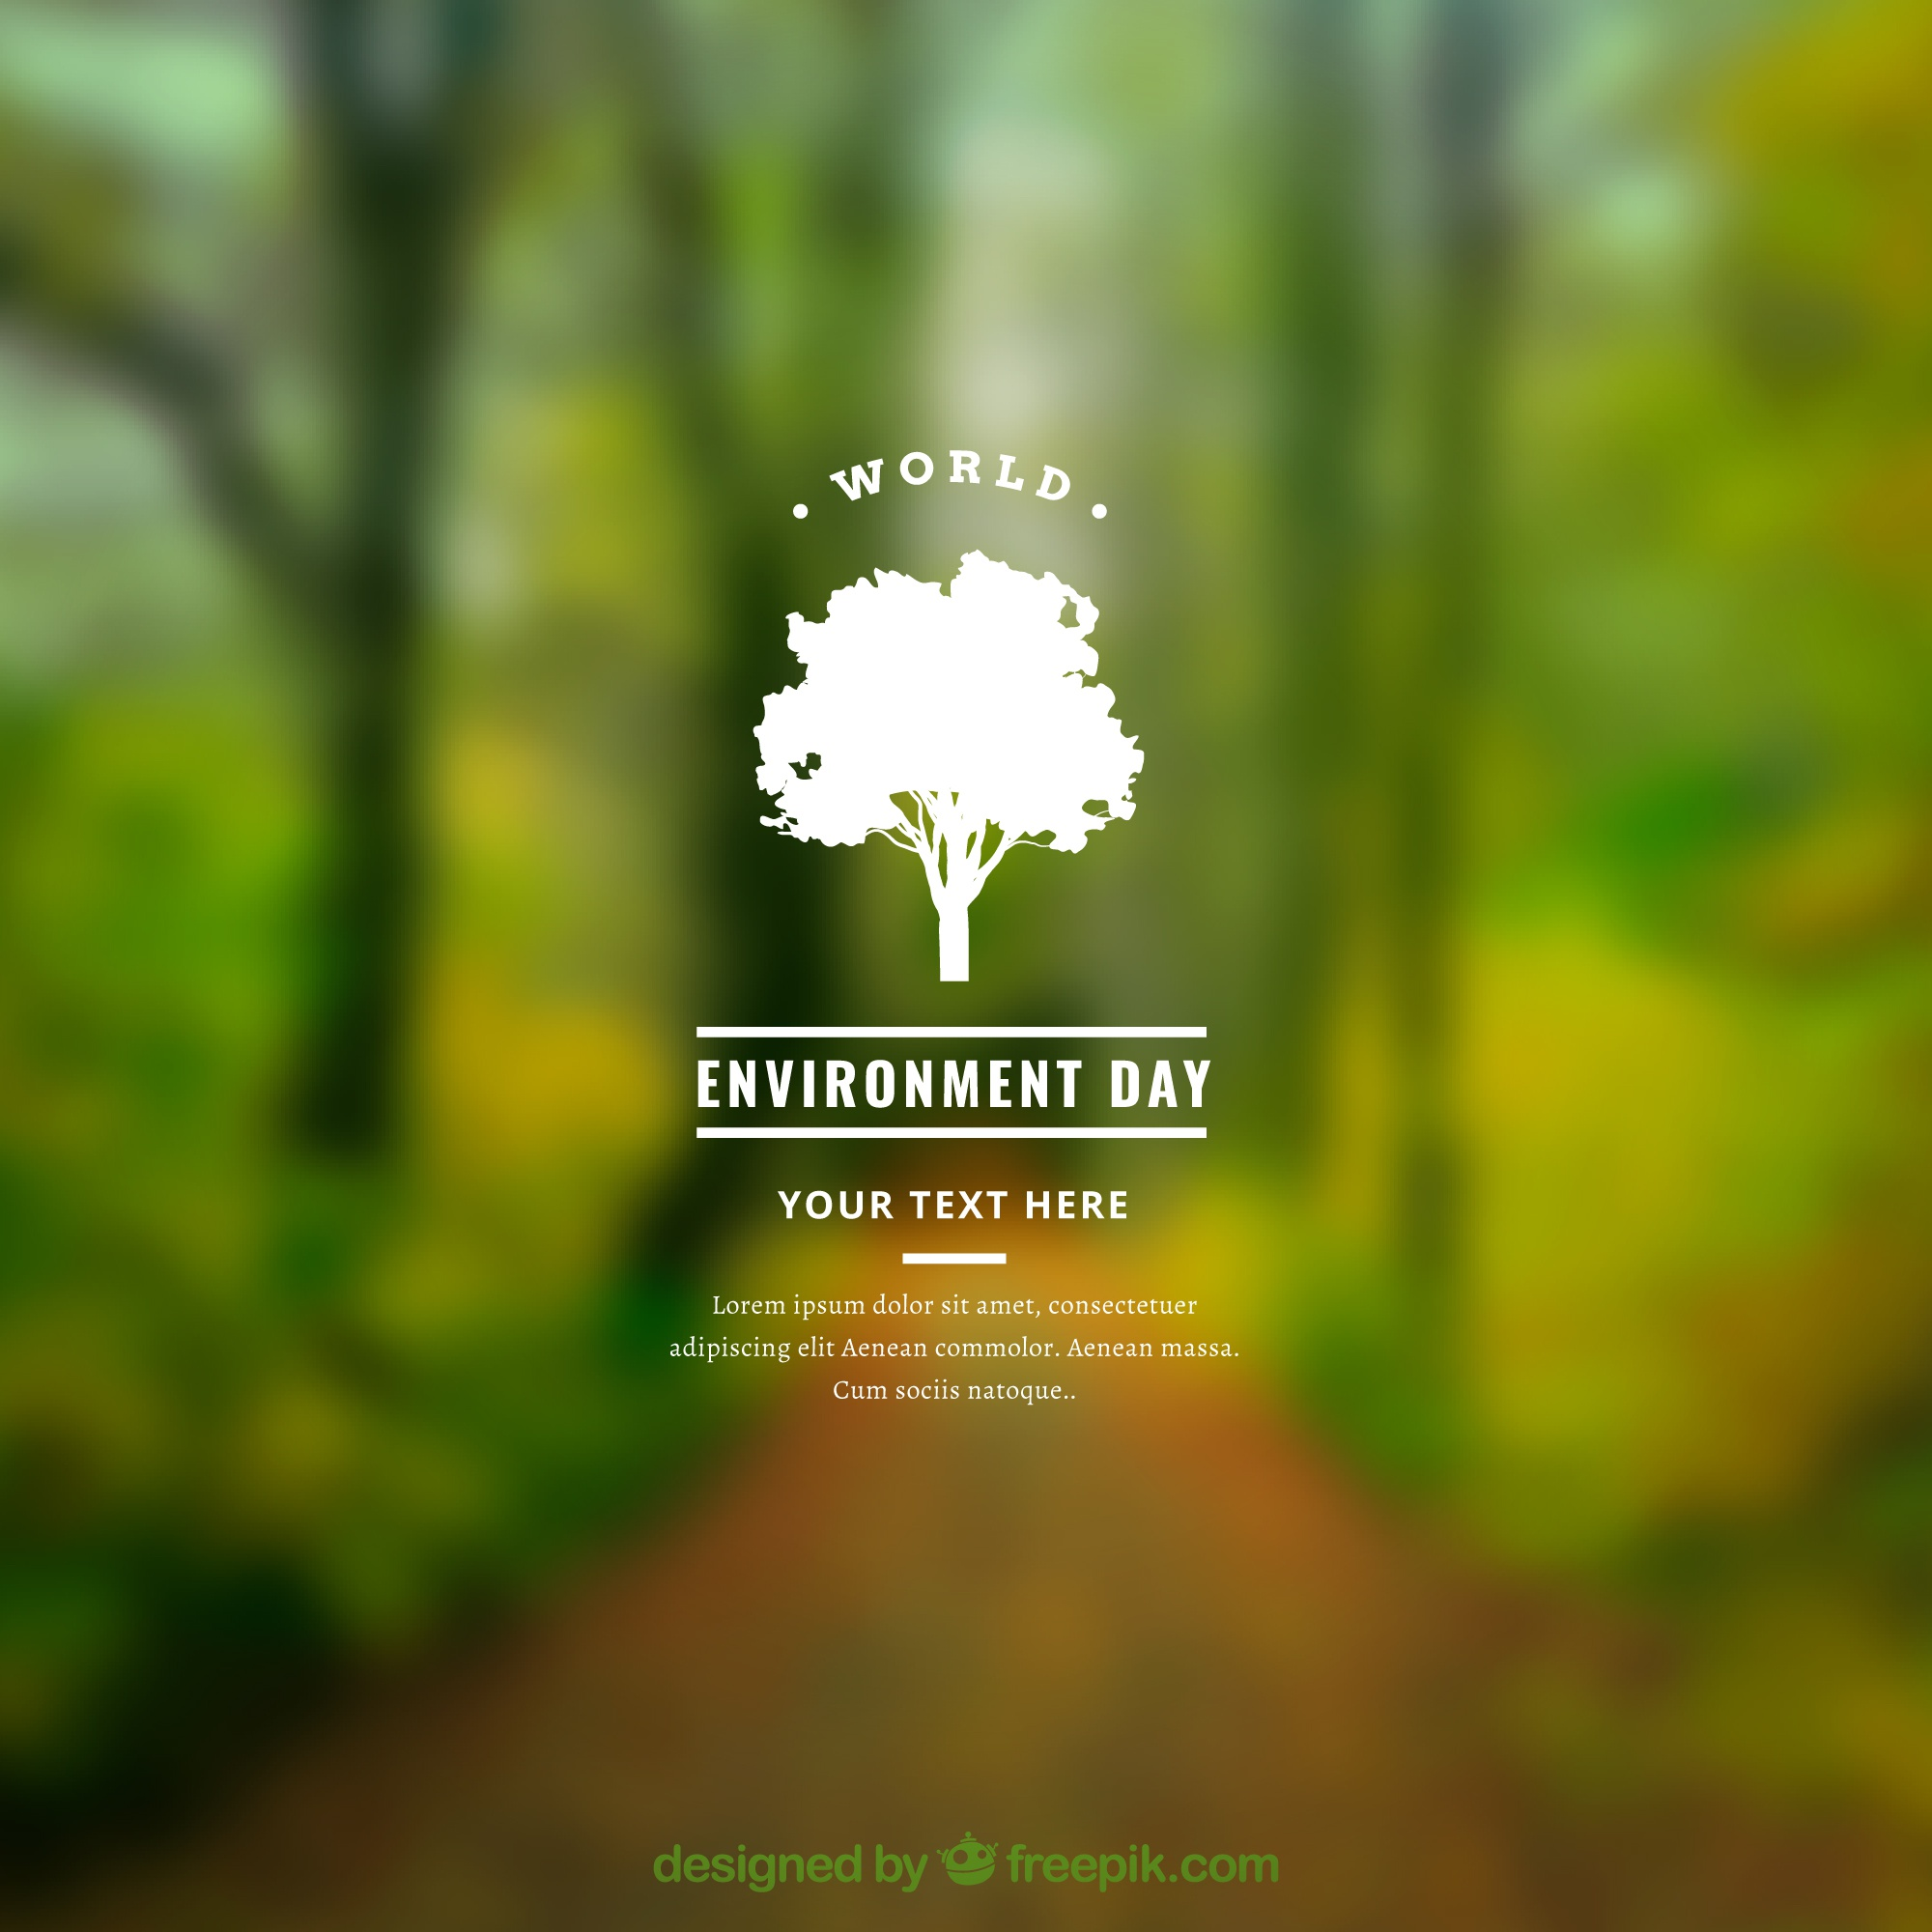 World environment day background with blurred effect